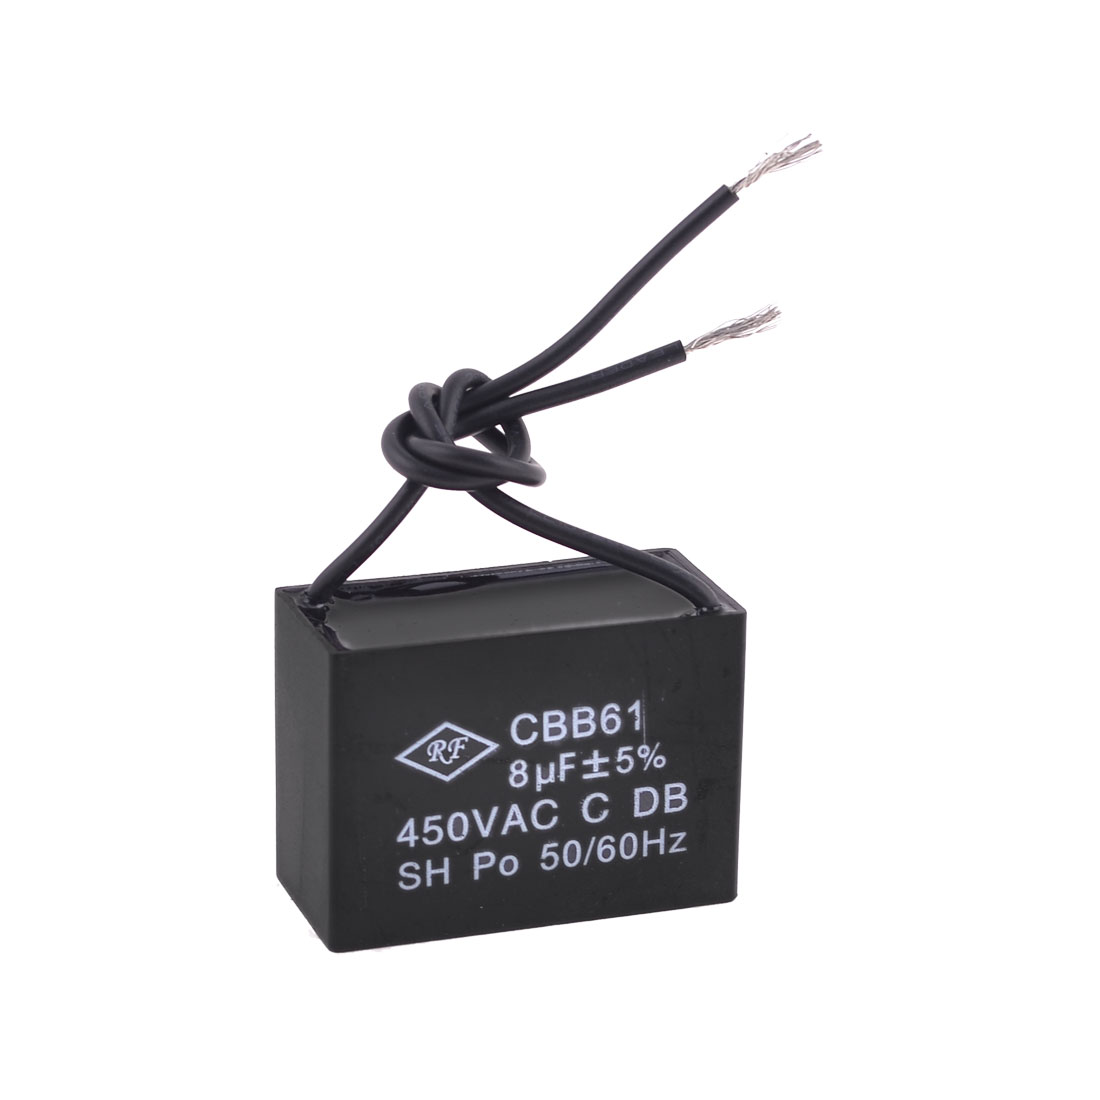 CBB61 Polypropylene Film Coated 450VAC 8uF Motor Run Capacitor Black